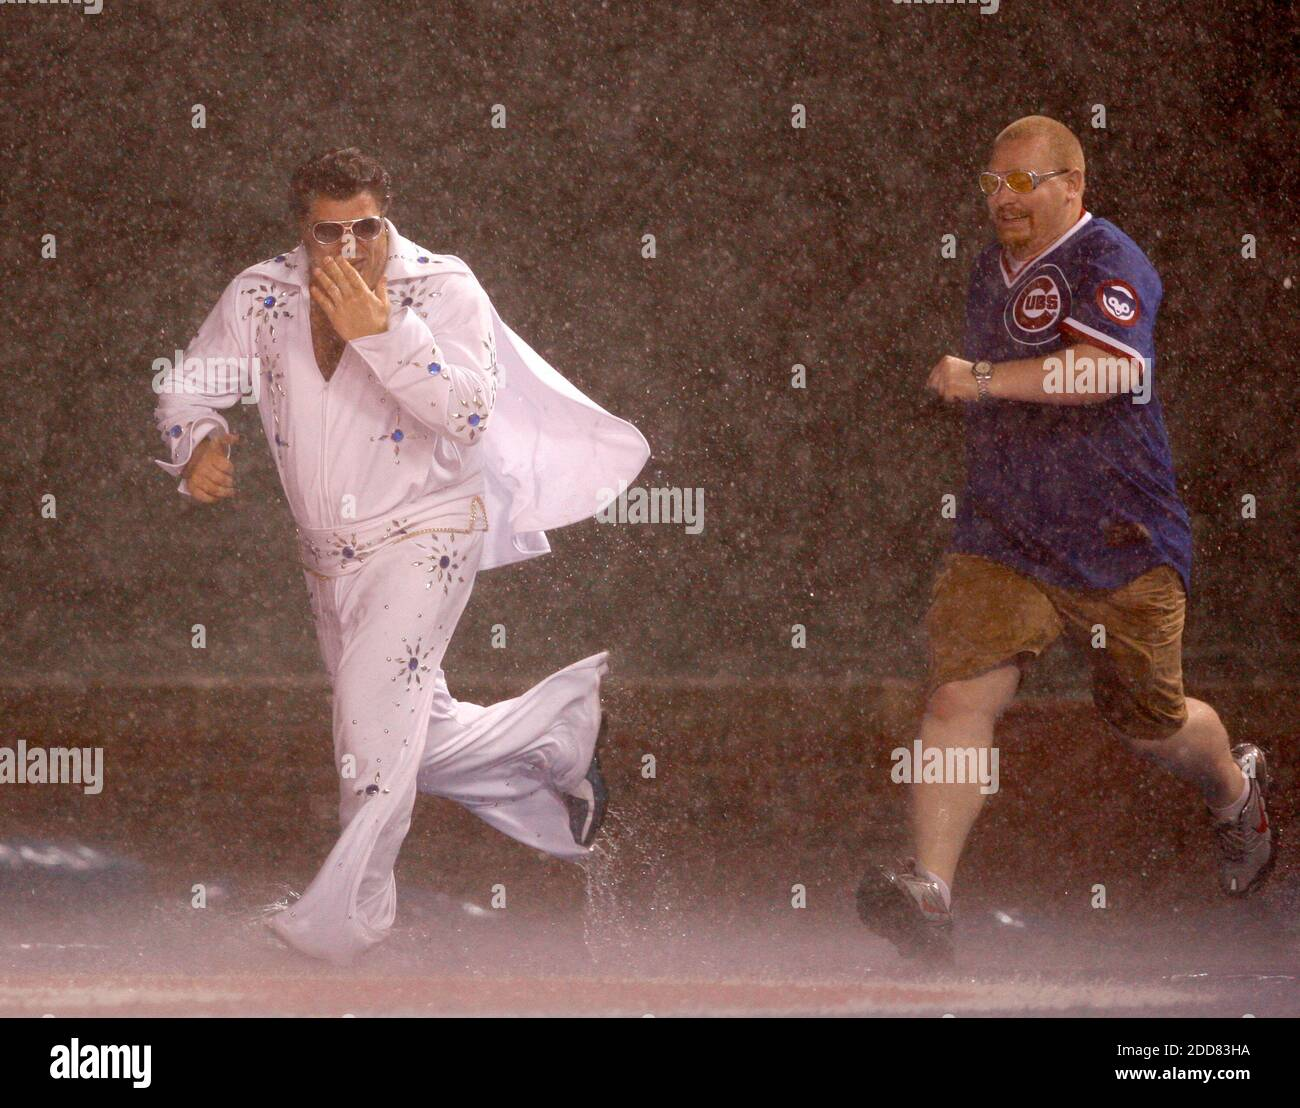 Chicago Cubs fans are arrested after sliding on the tarp during a rain delay in the Cubs game against the Houston Astros at Wrigley Field in Chicago, Illinois, on Monday August 4, 2008. Photo by Nuccio DiNuzzo/Chicago Tribune/MCT/Cameleon/ABACAPRESS.COM Stock Photo